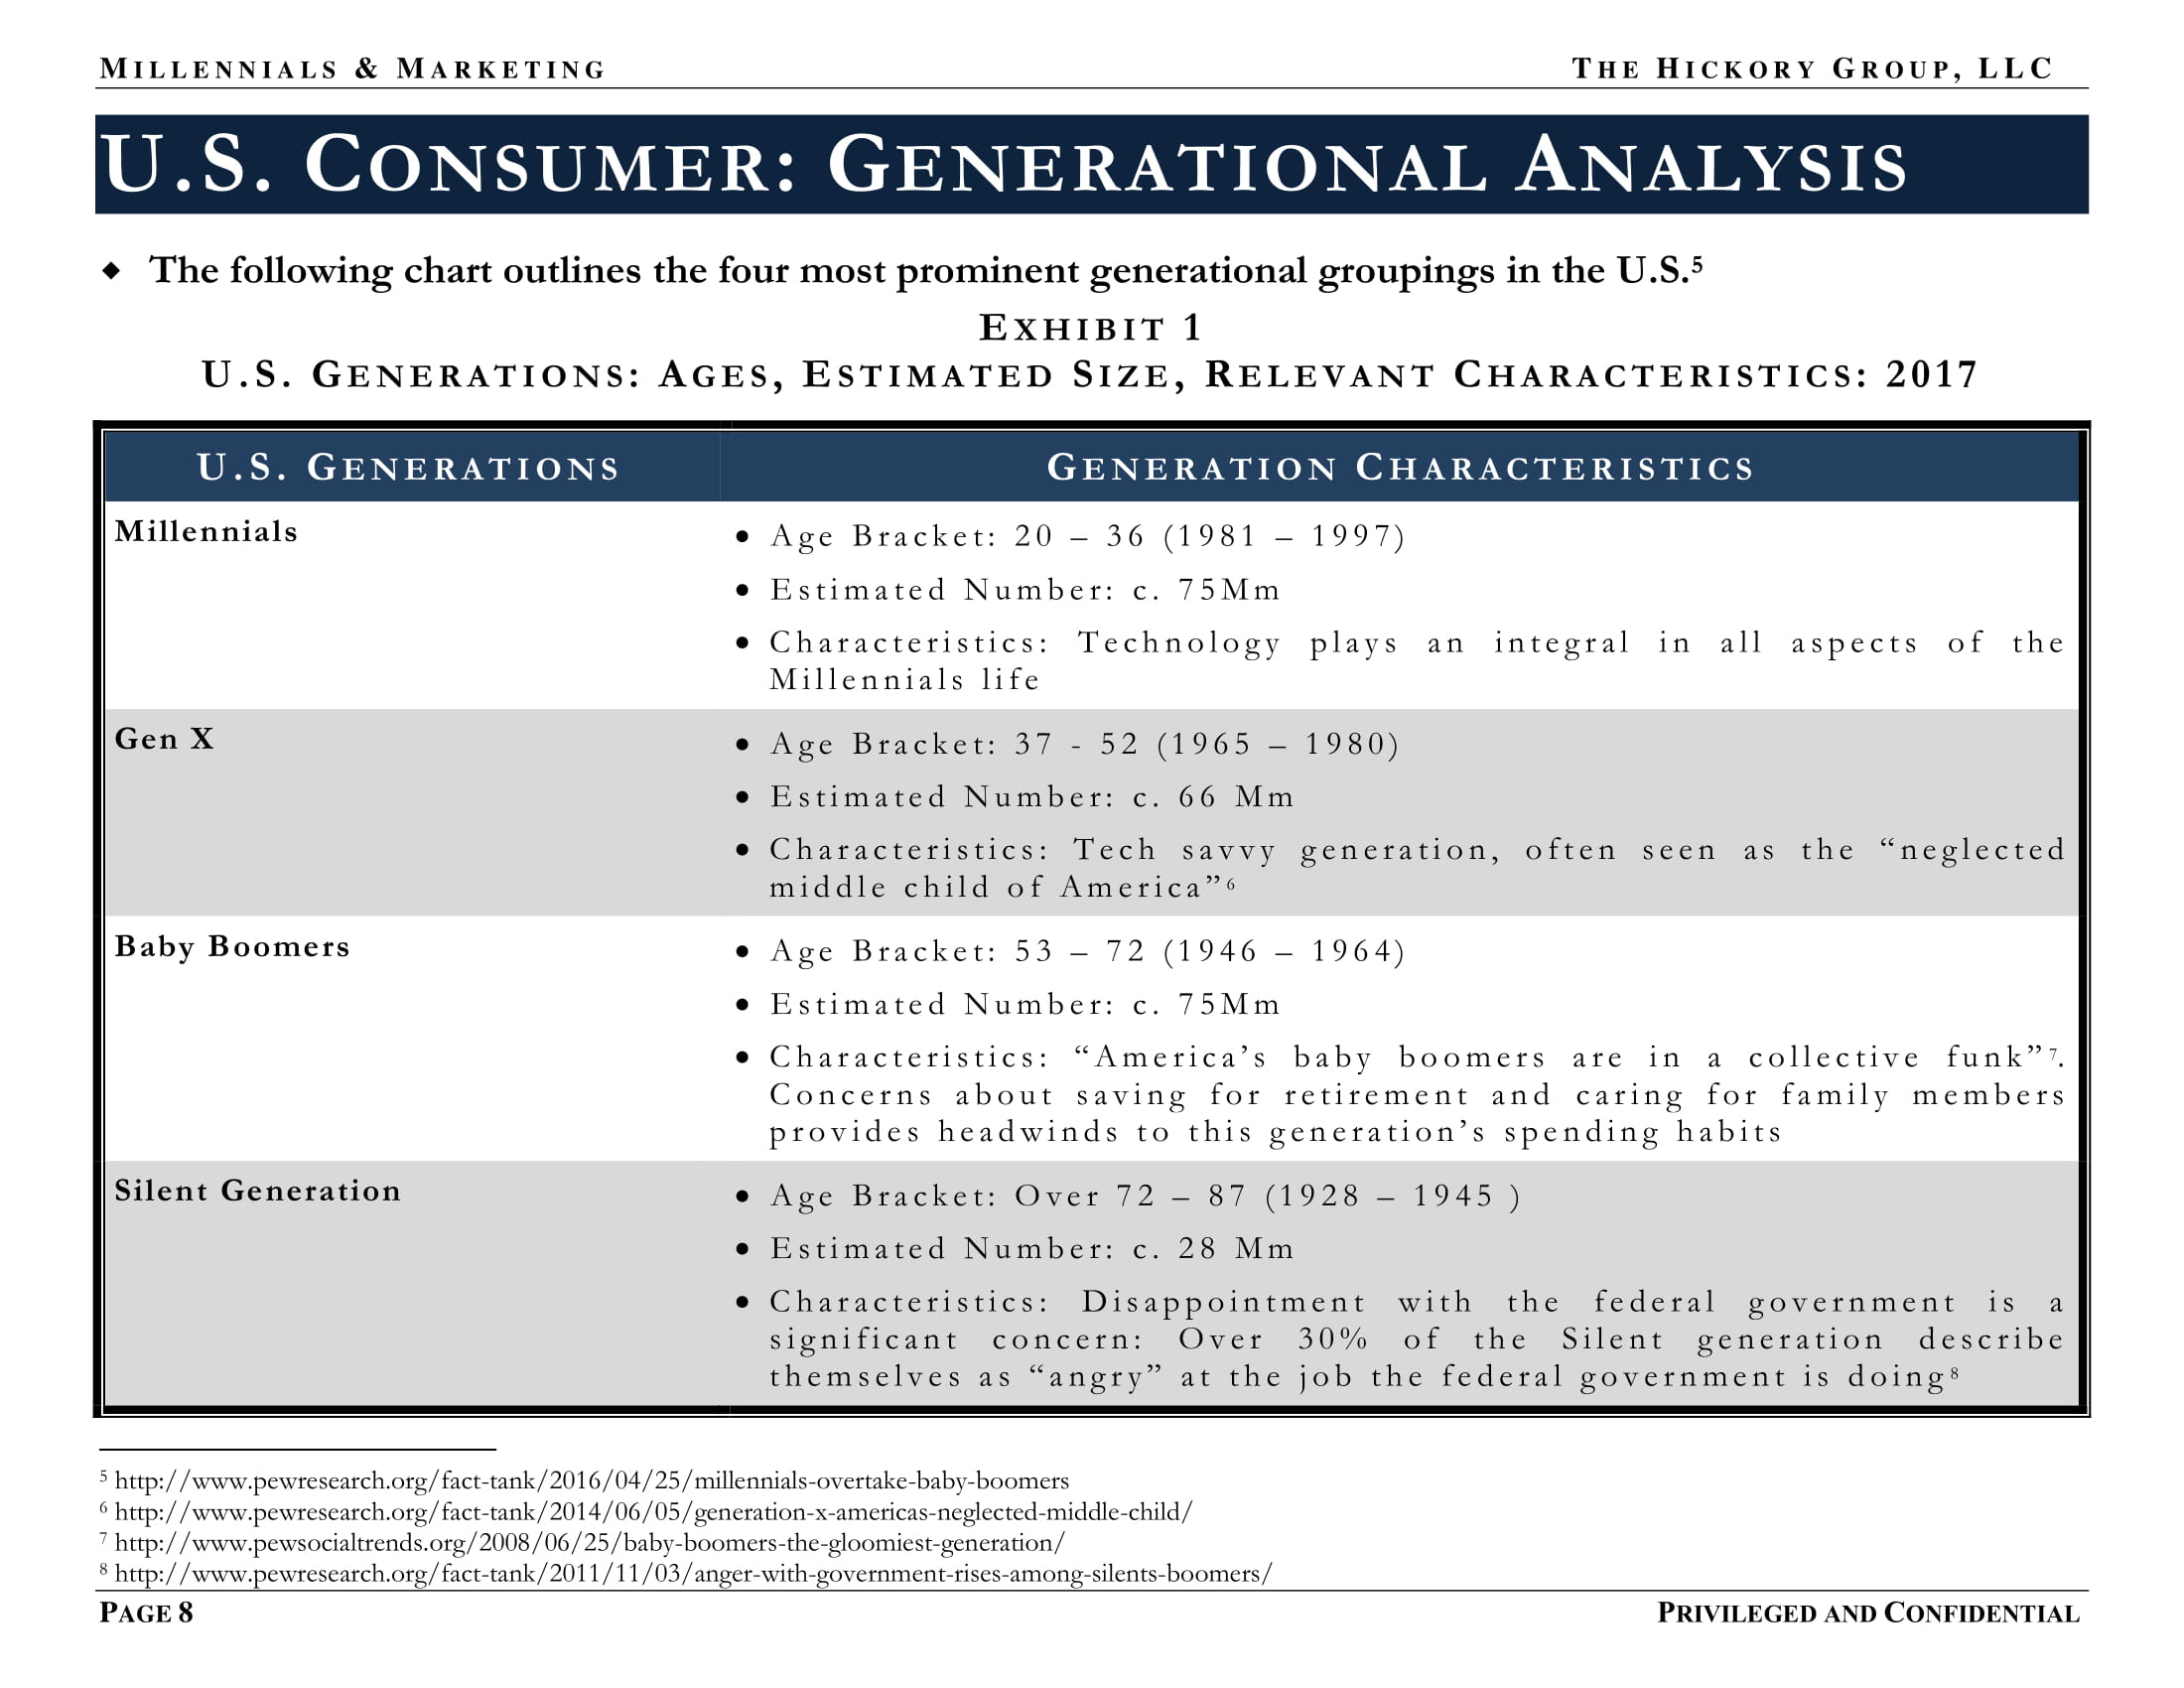 FINAL US Female Millennial Market Summary (December 2017) Privileged and Confidential-08.jpg